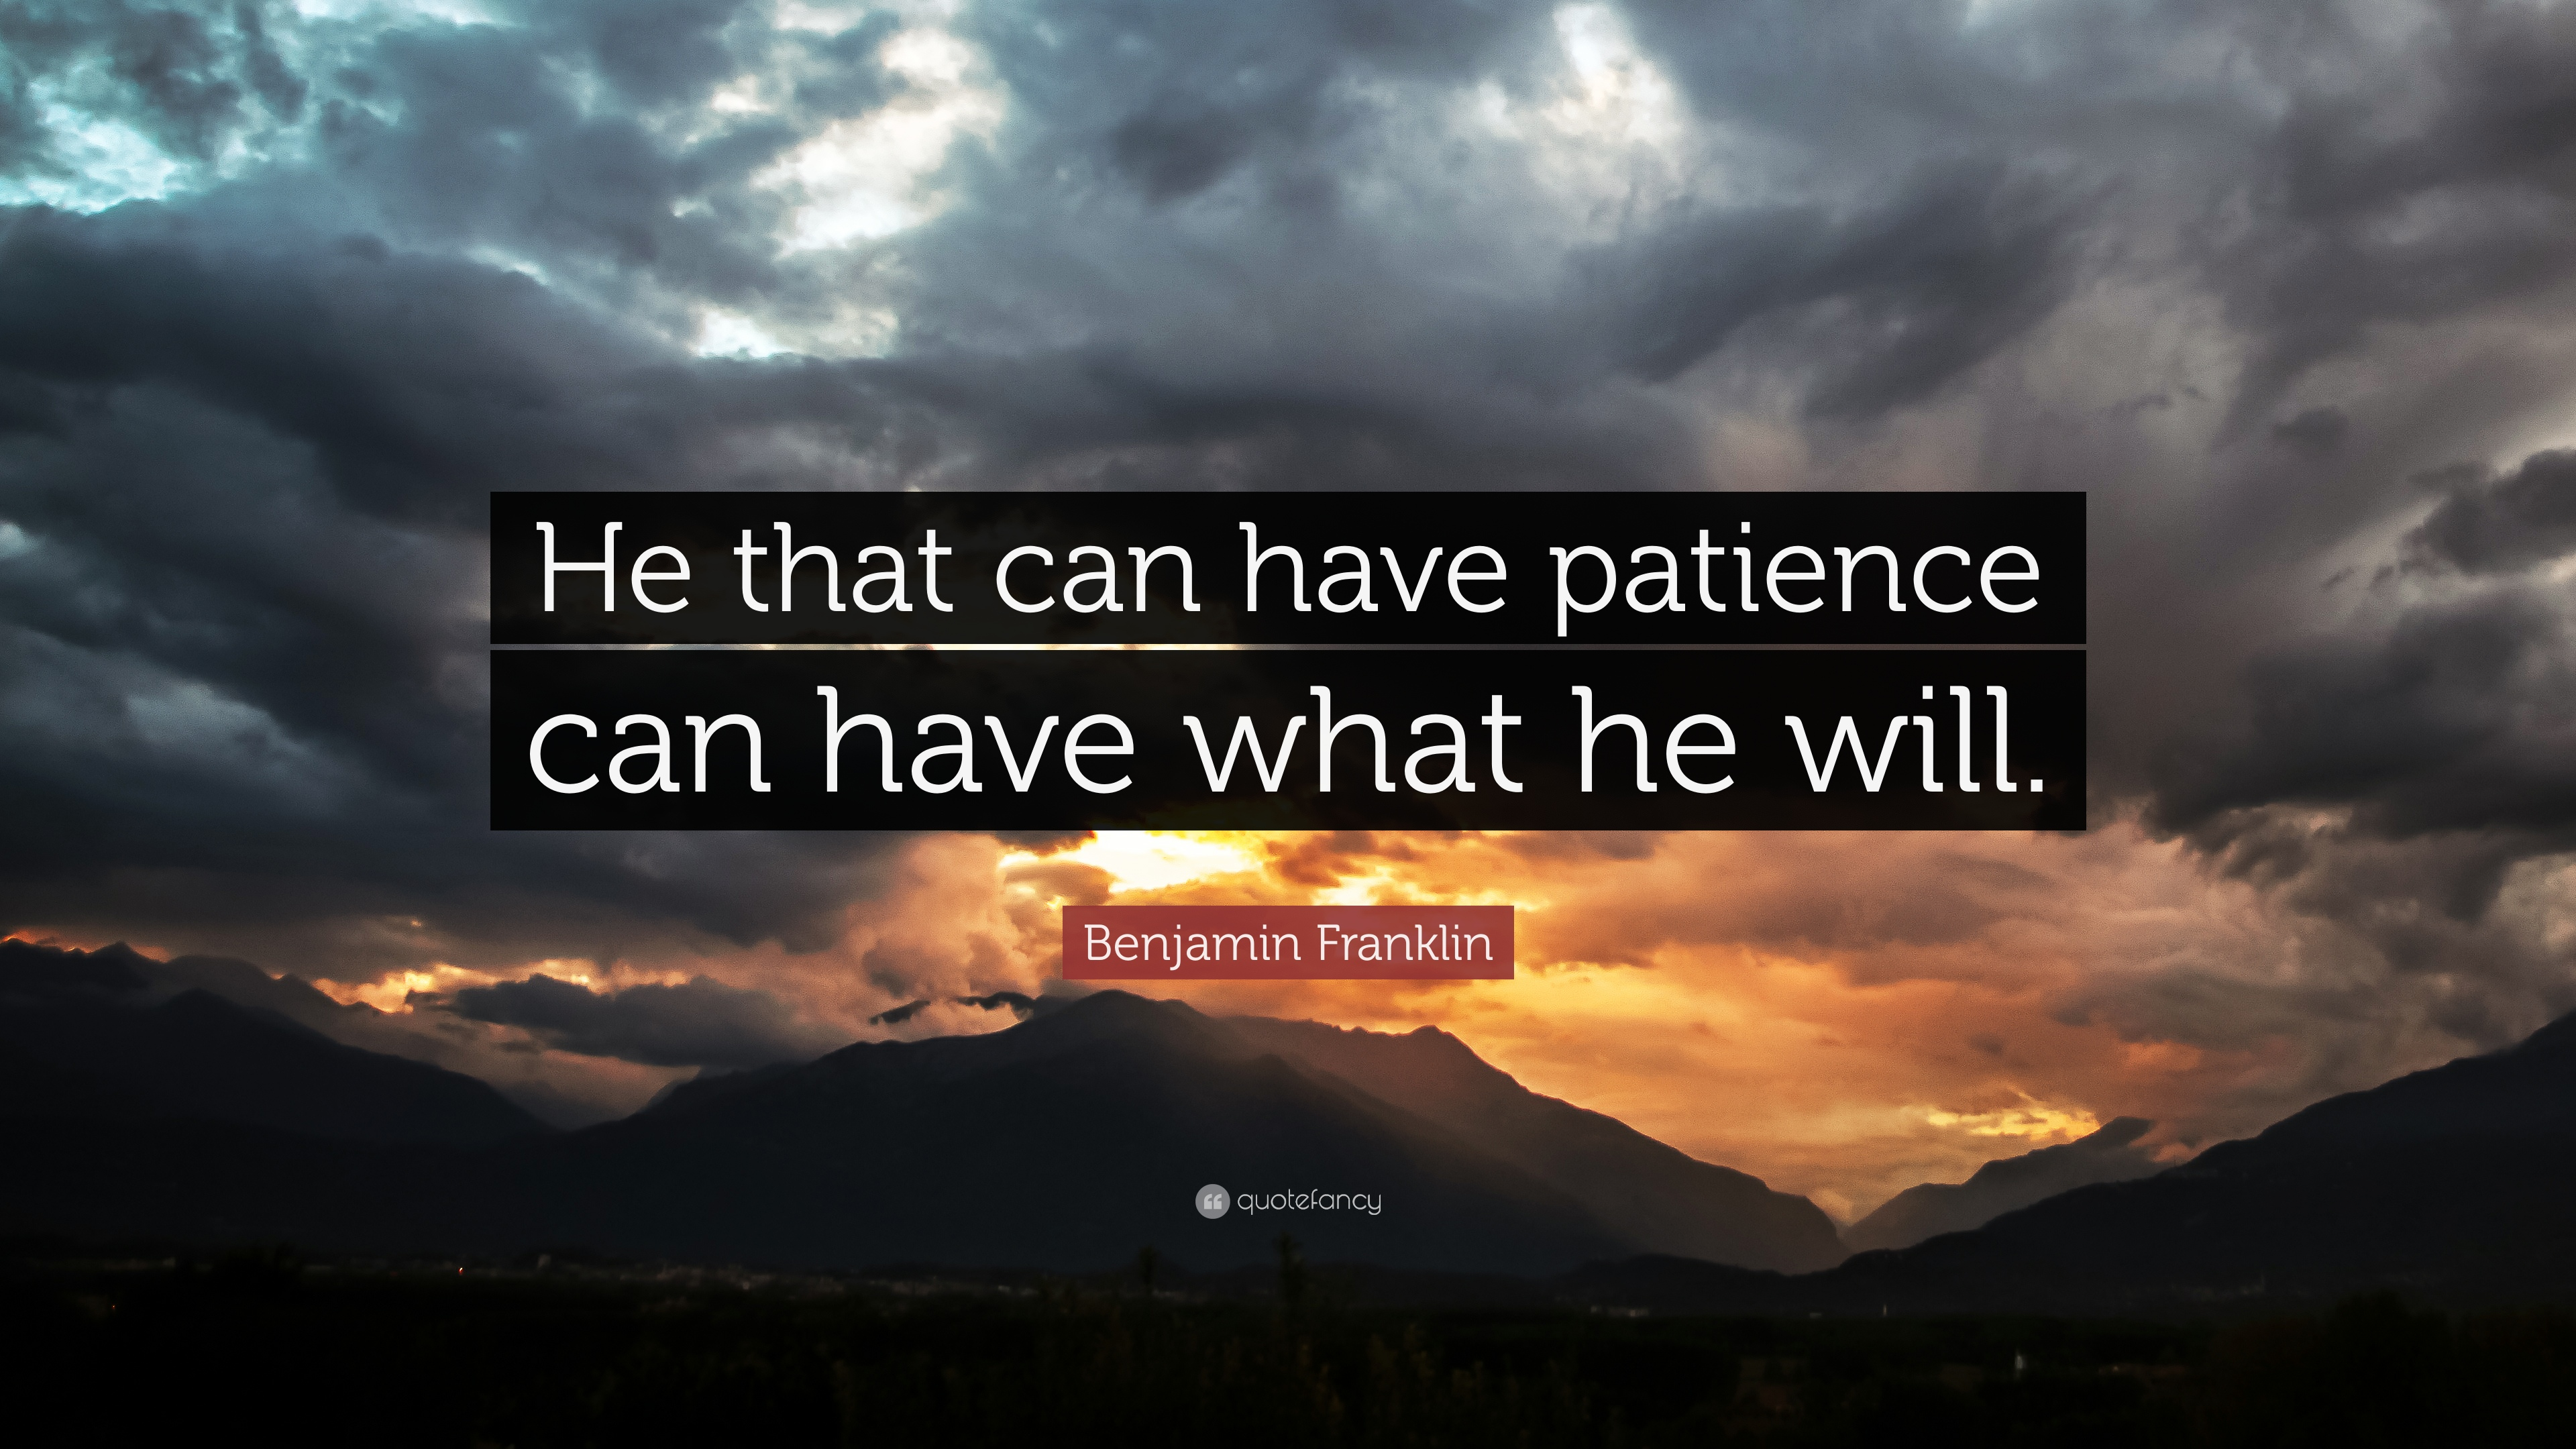 Superior Benjamin Franklin Quote: U201cHe That Can Have Patience Can Have What He Will.